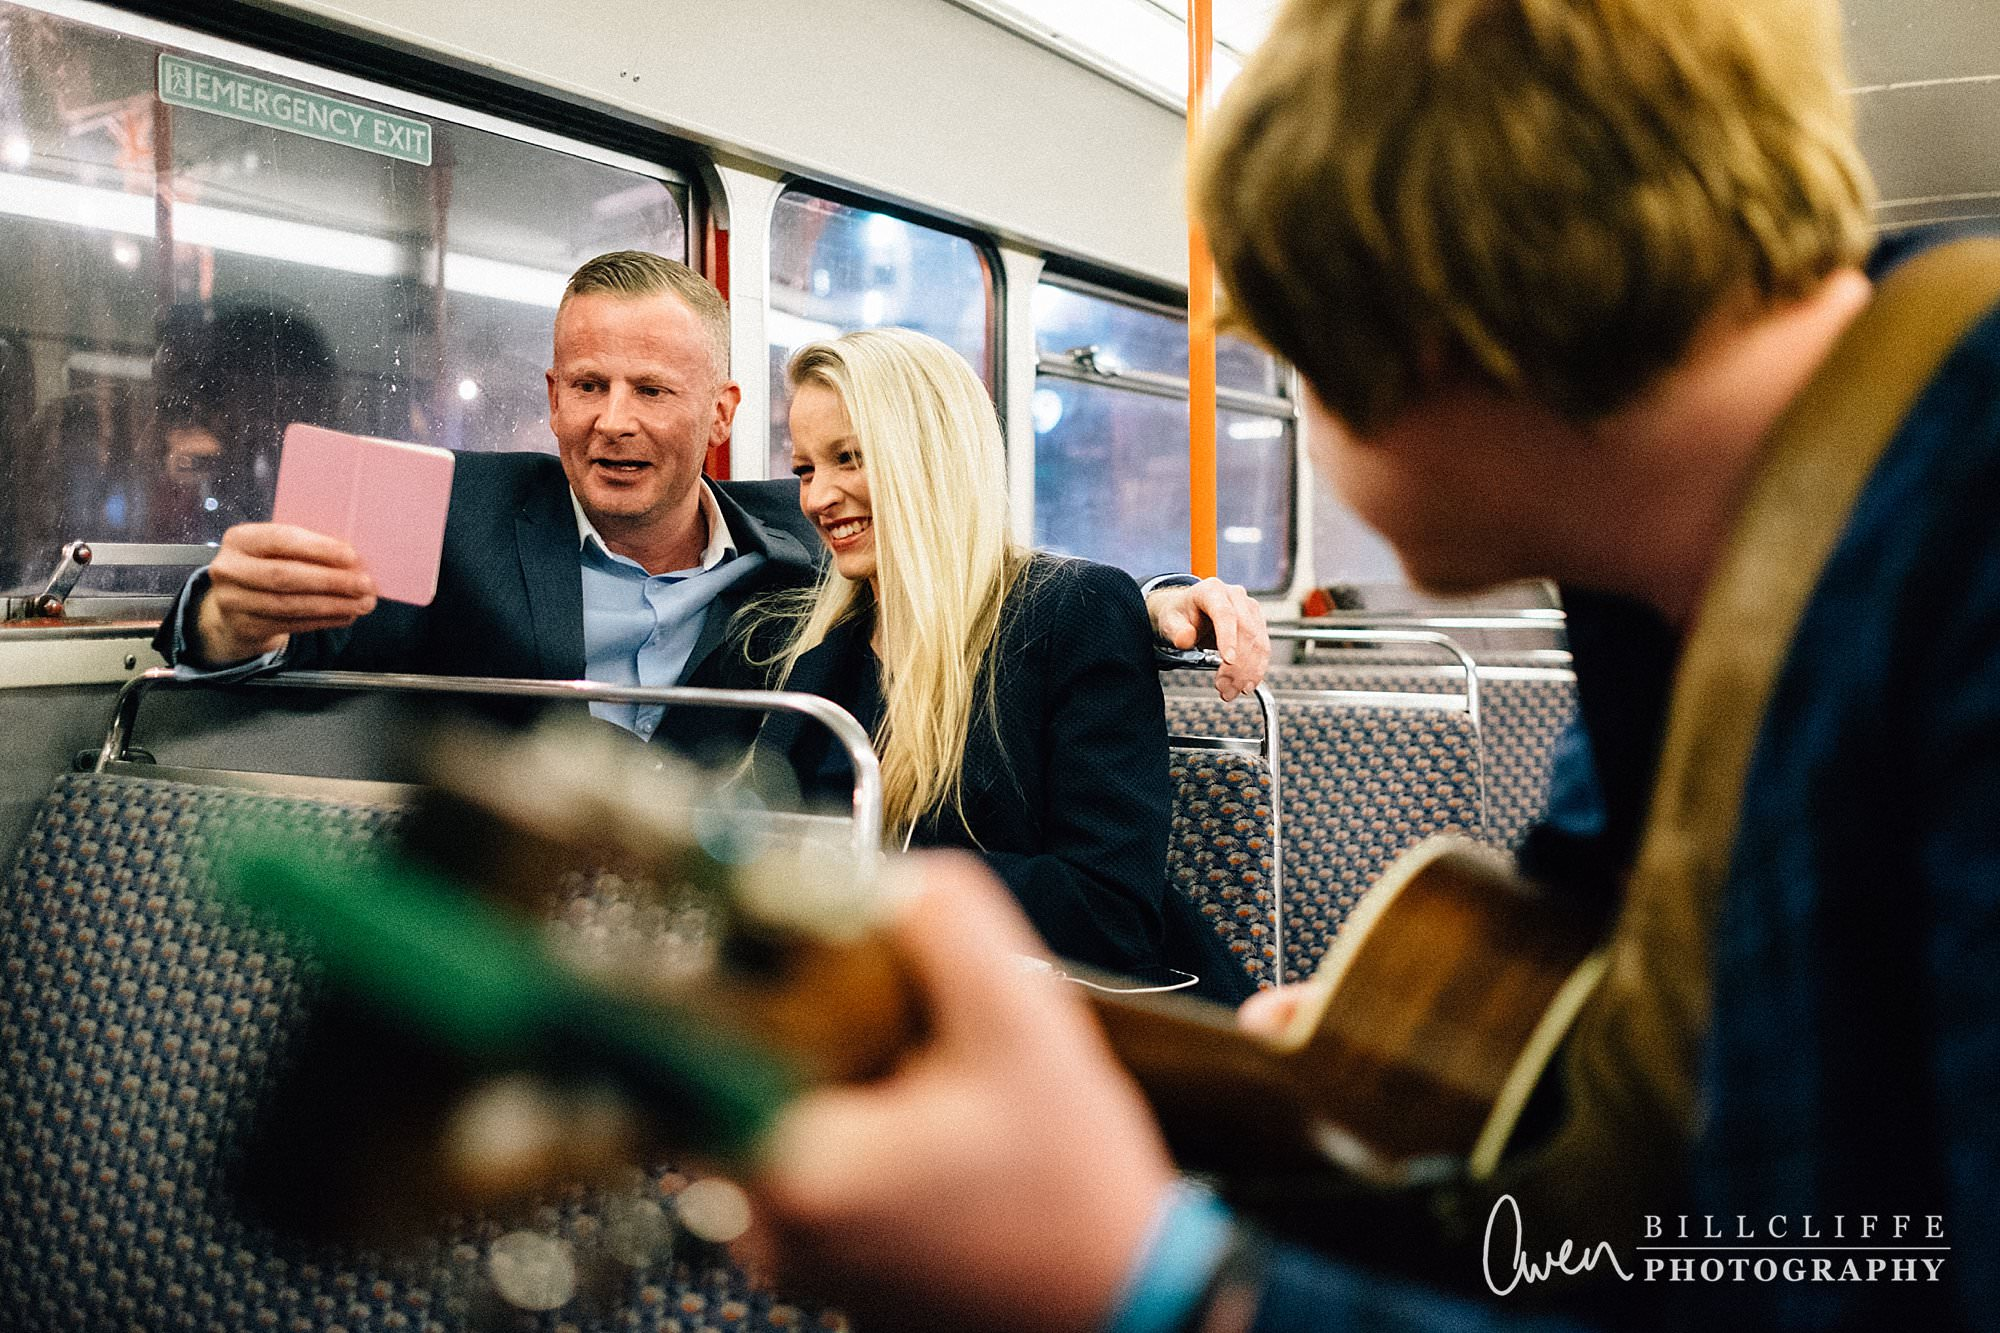 london engagement proposal photographer routemaster RE 006 - When Richard Proposed To Emma on a London Routemaster Bus